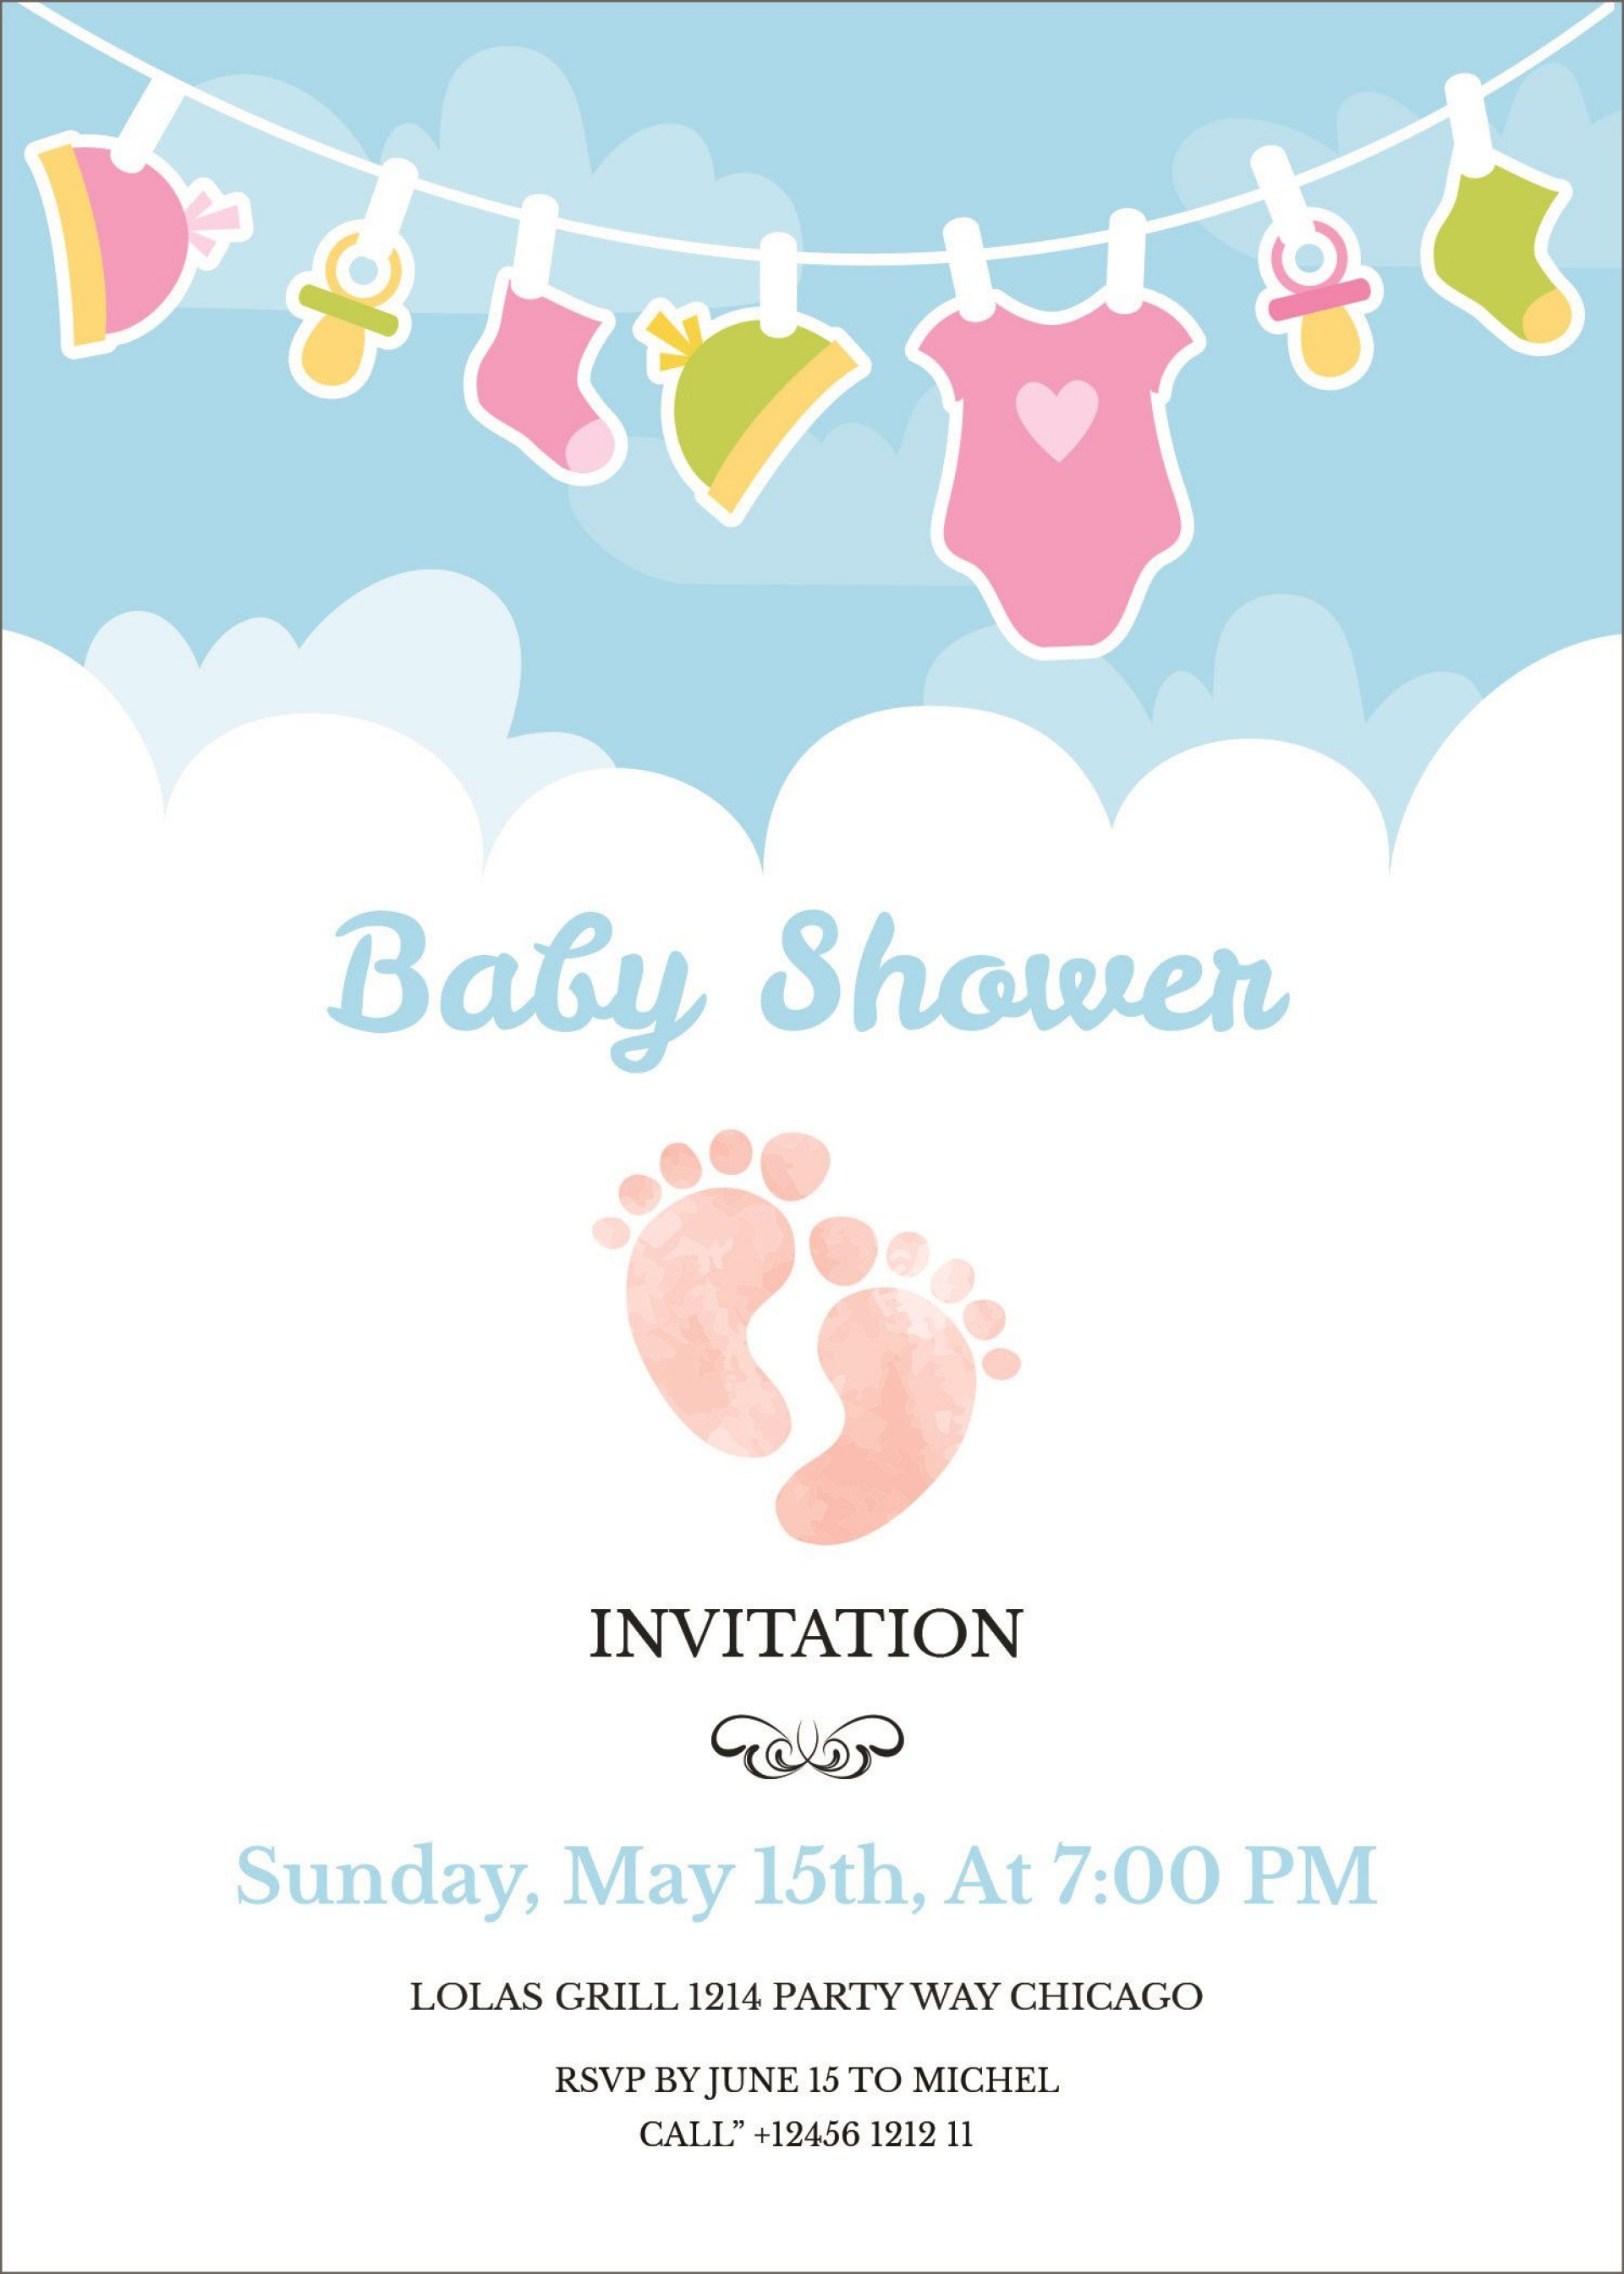 004 Phenomenal Baby Shower Card Design Free Highest Clarity  Template Microsoft Word Boy Download1920